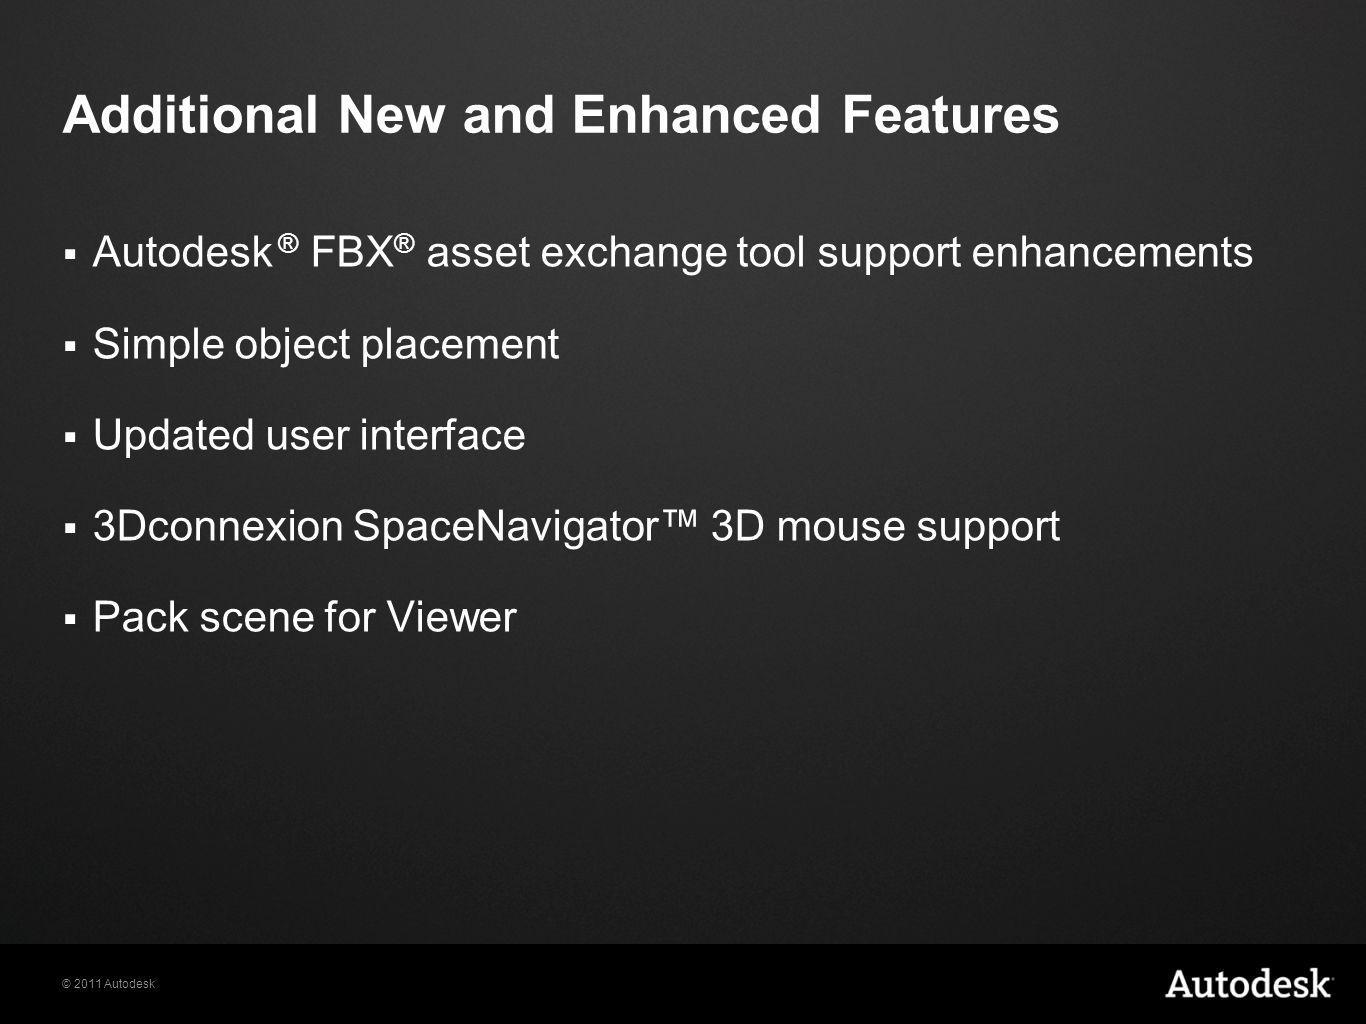 © 2011 Autodesk  Autodesk ® FBX ® asset exchange tool support enhancements  Simple object placement  Updated user interface  3Dconnexion SpaceNavigator™ 3D mouse support  Pack scene for Viewer Additional New and Enhanced Features